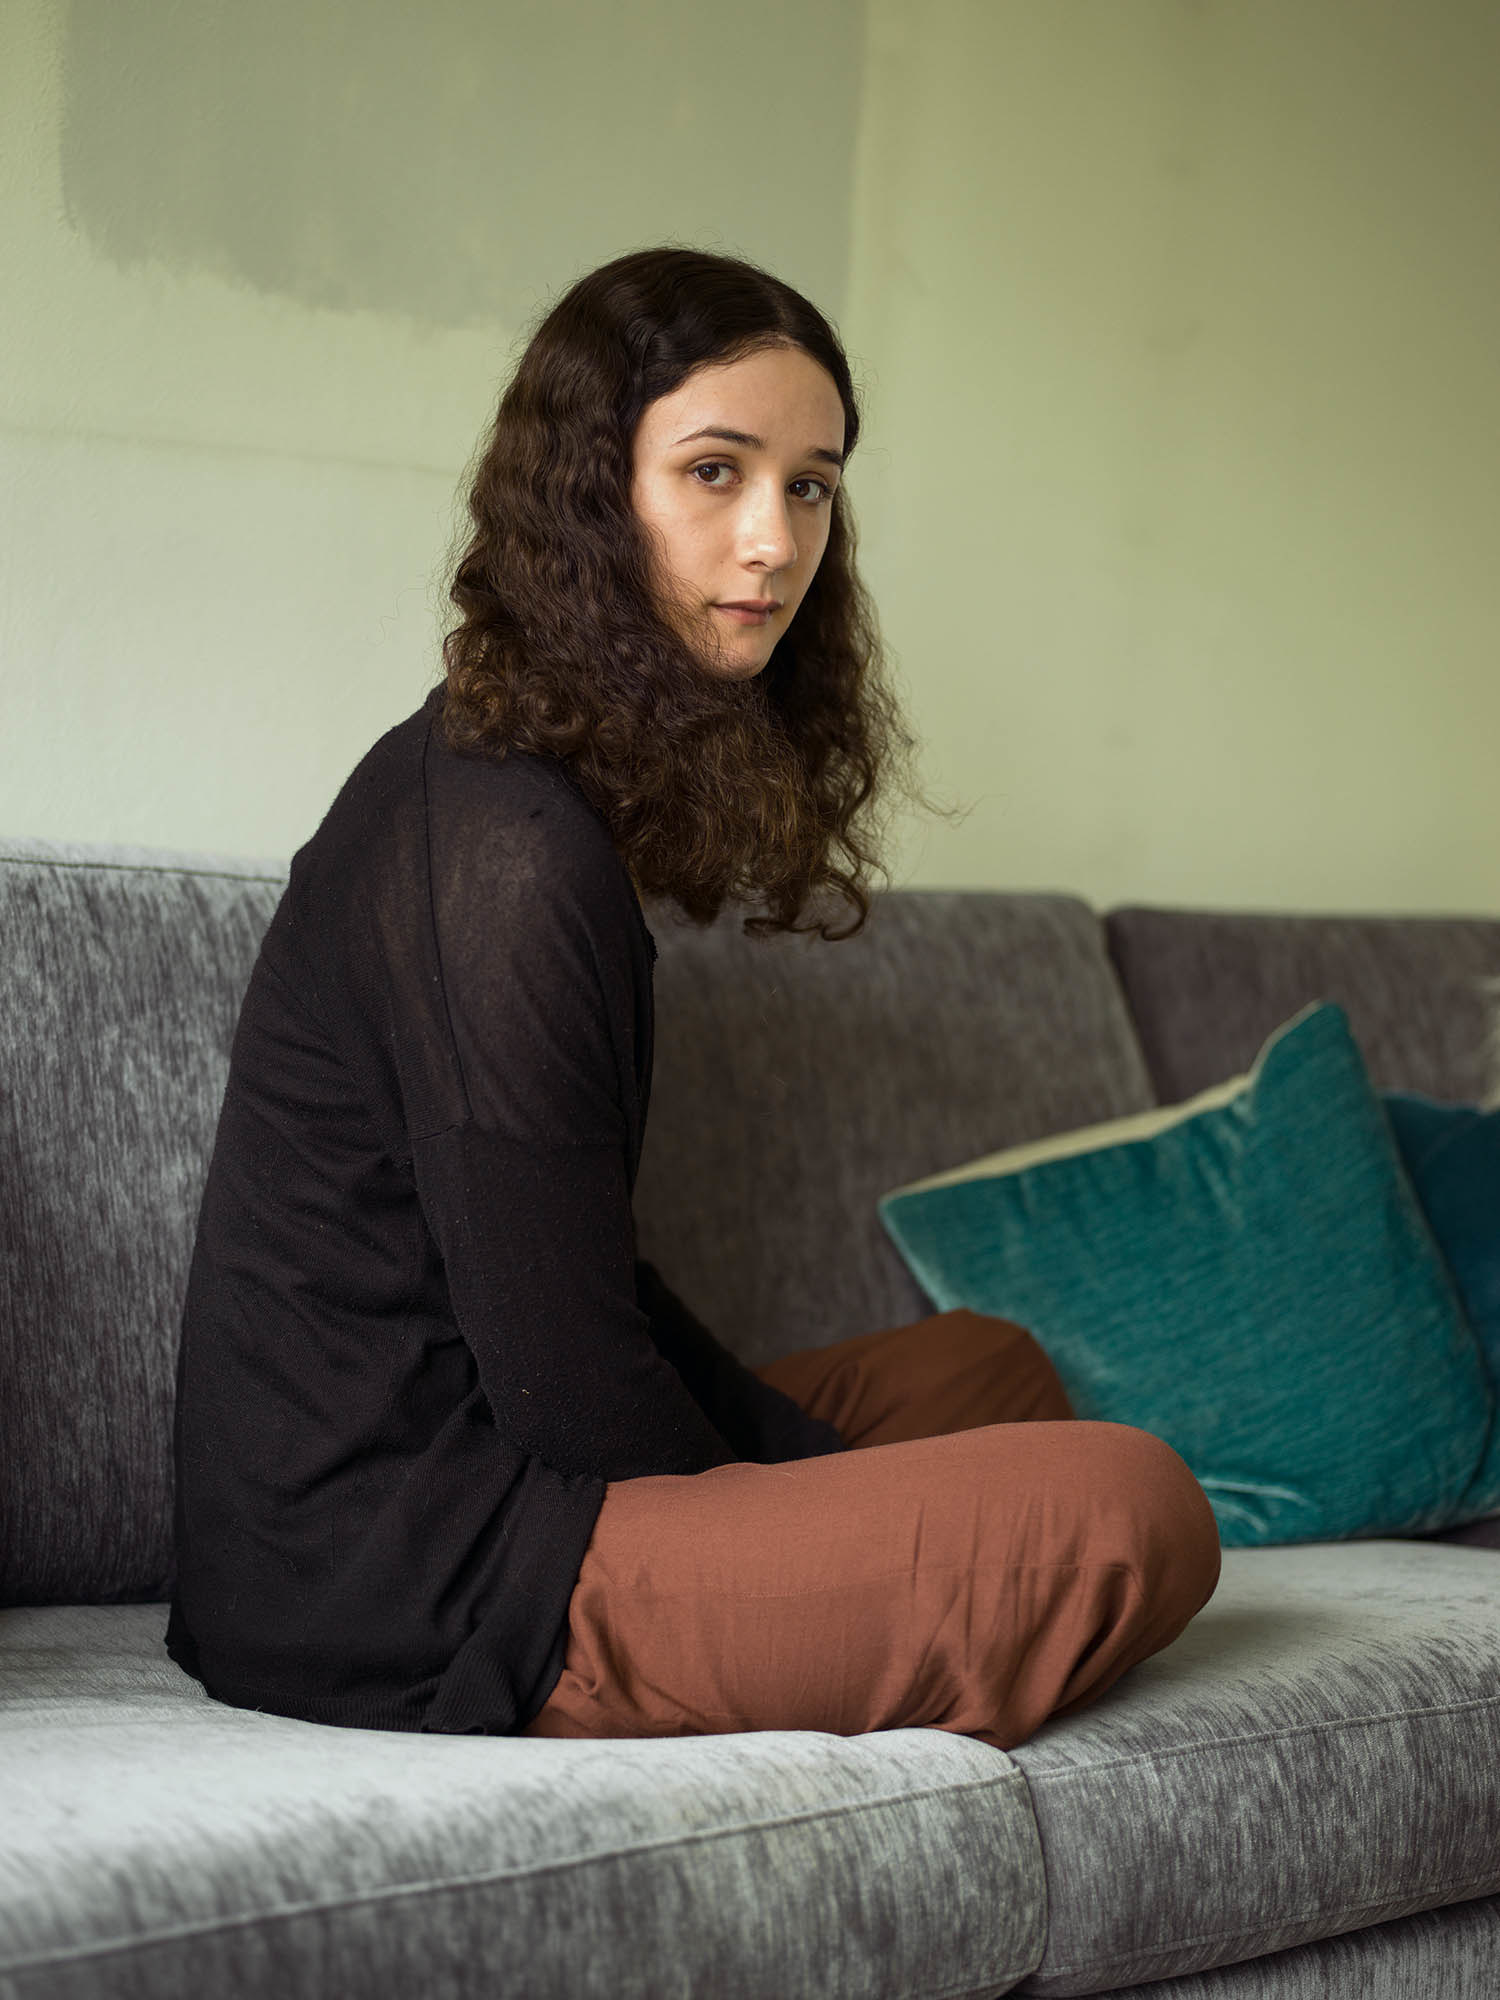 A person sits on a couch with their legs crossed and gazes at the camera